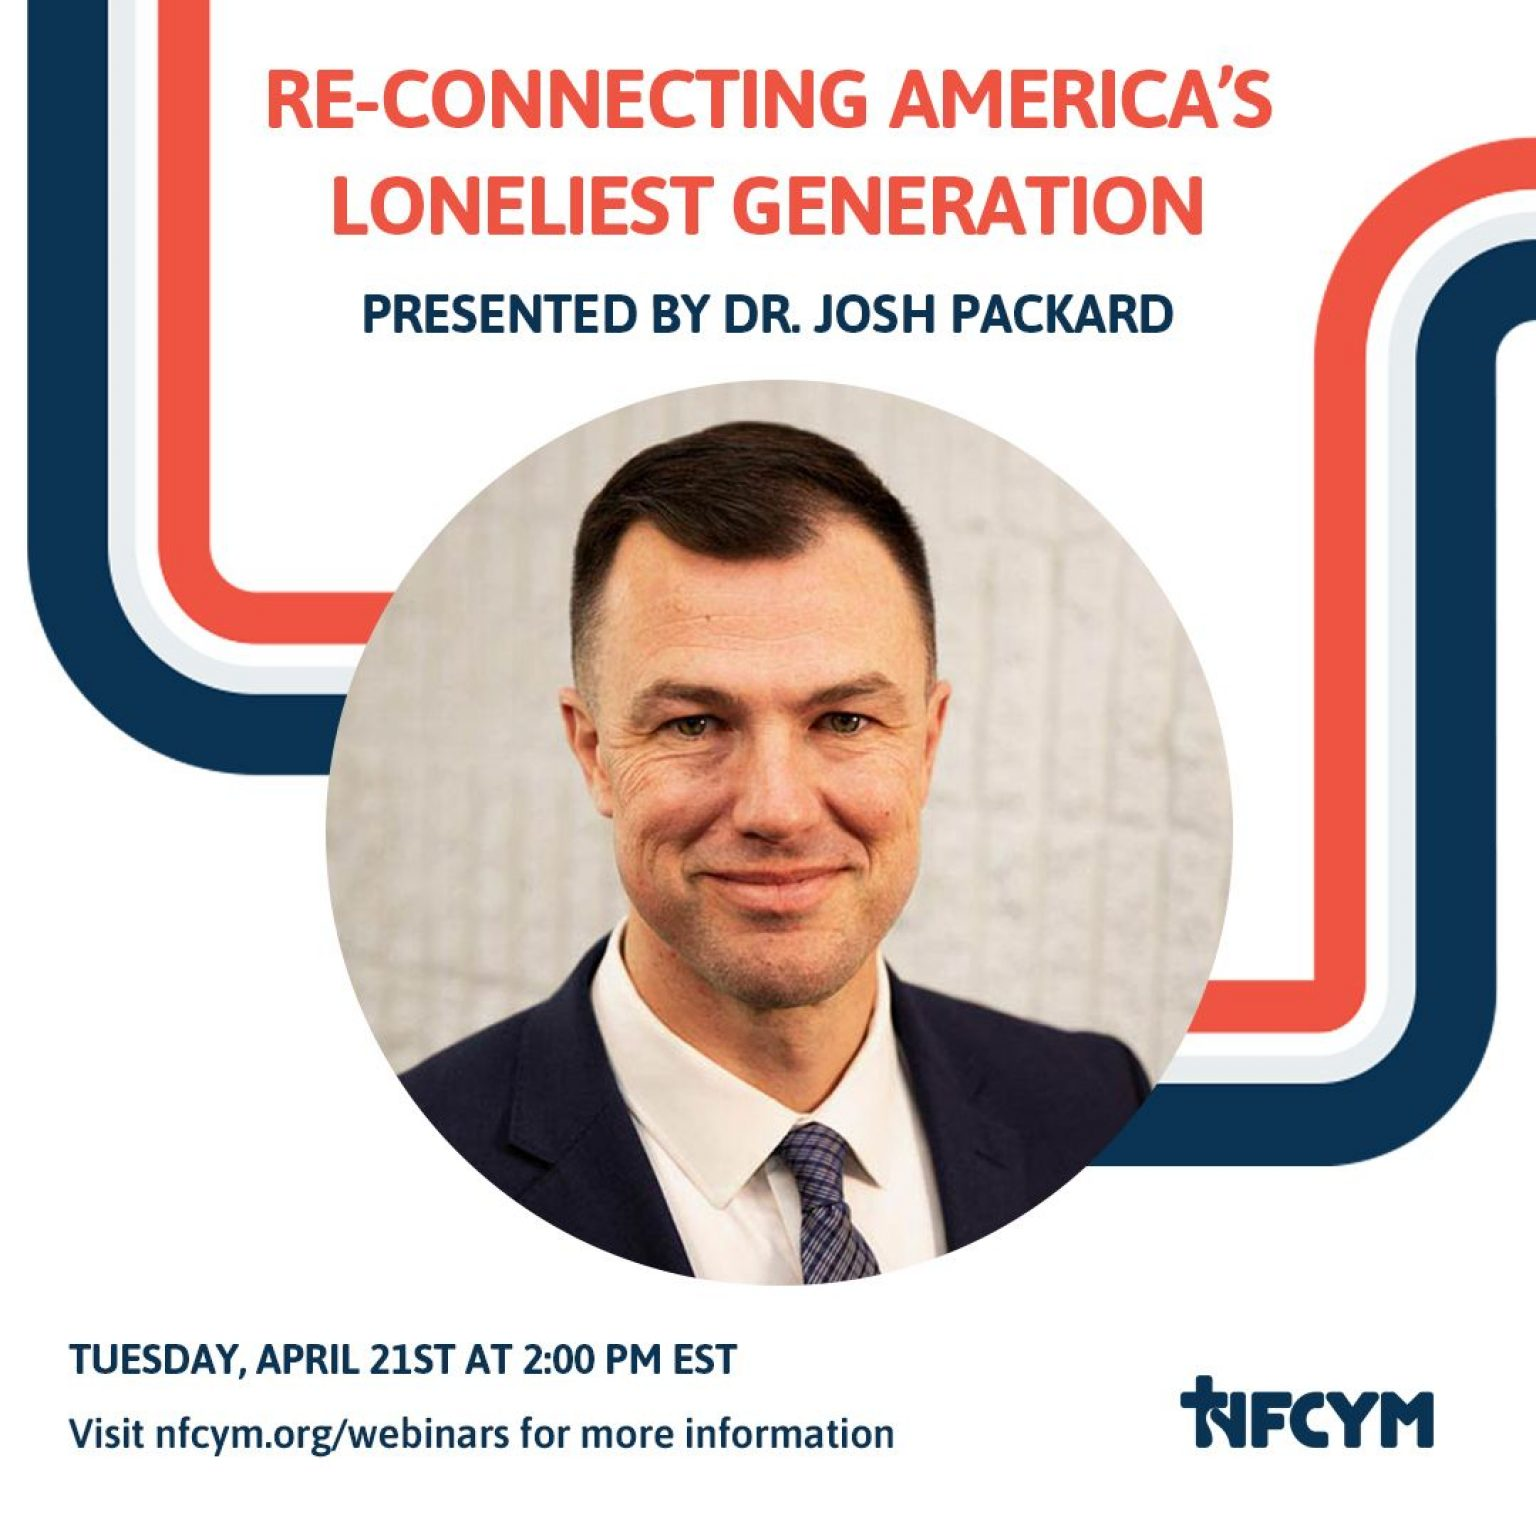 NFCYM Webinar: Reconnecting America's Loneliest Generation